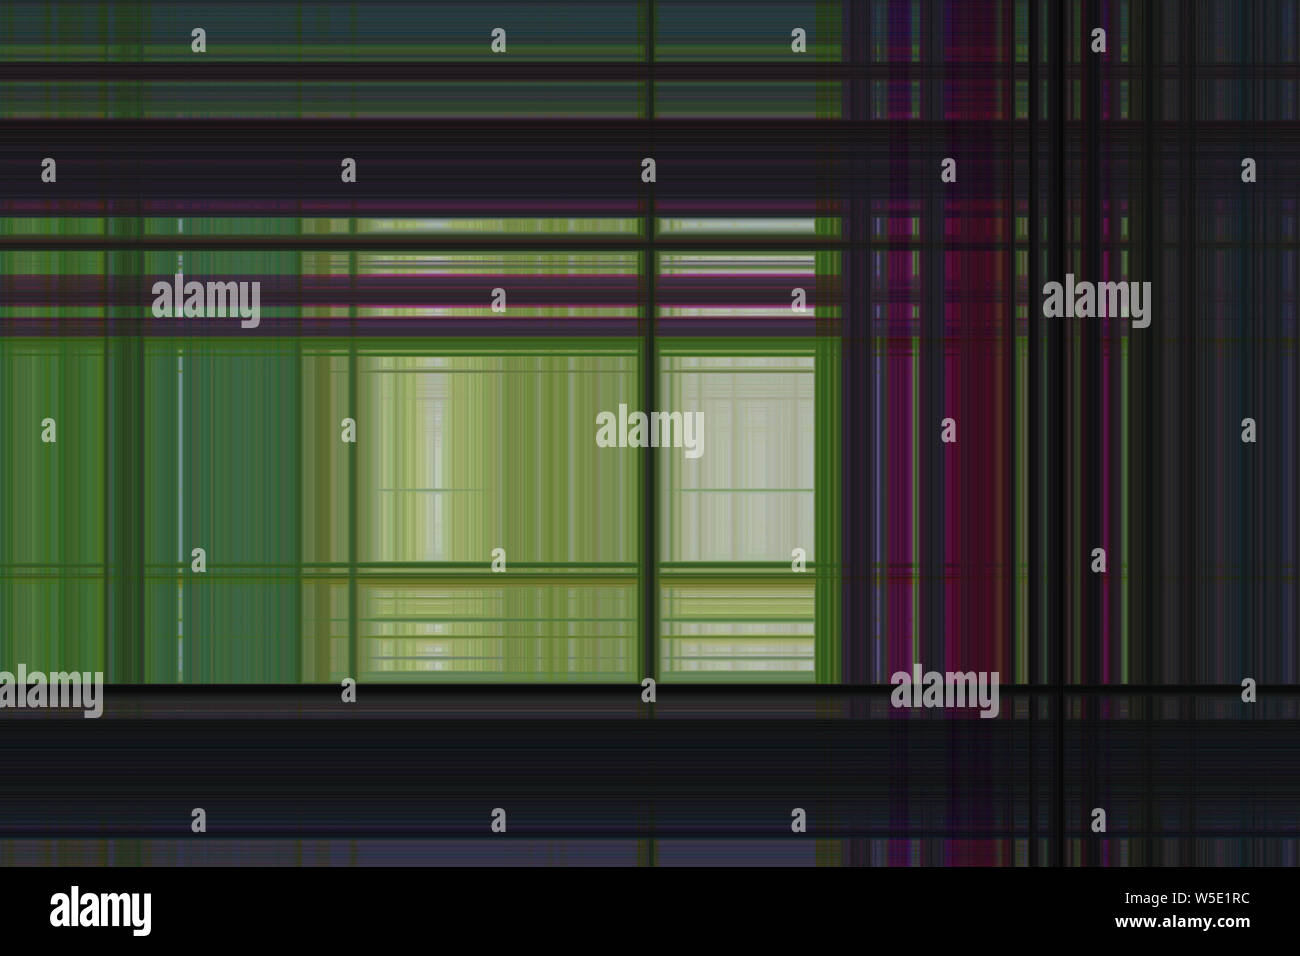 Abstract background for use in design Stock Photo